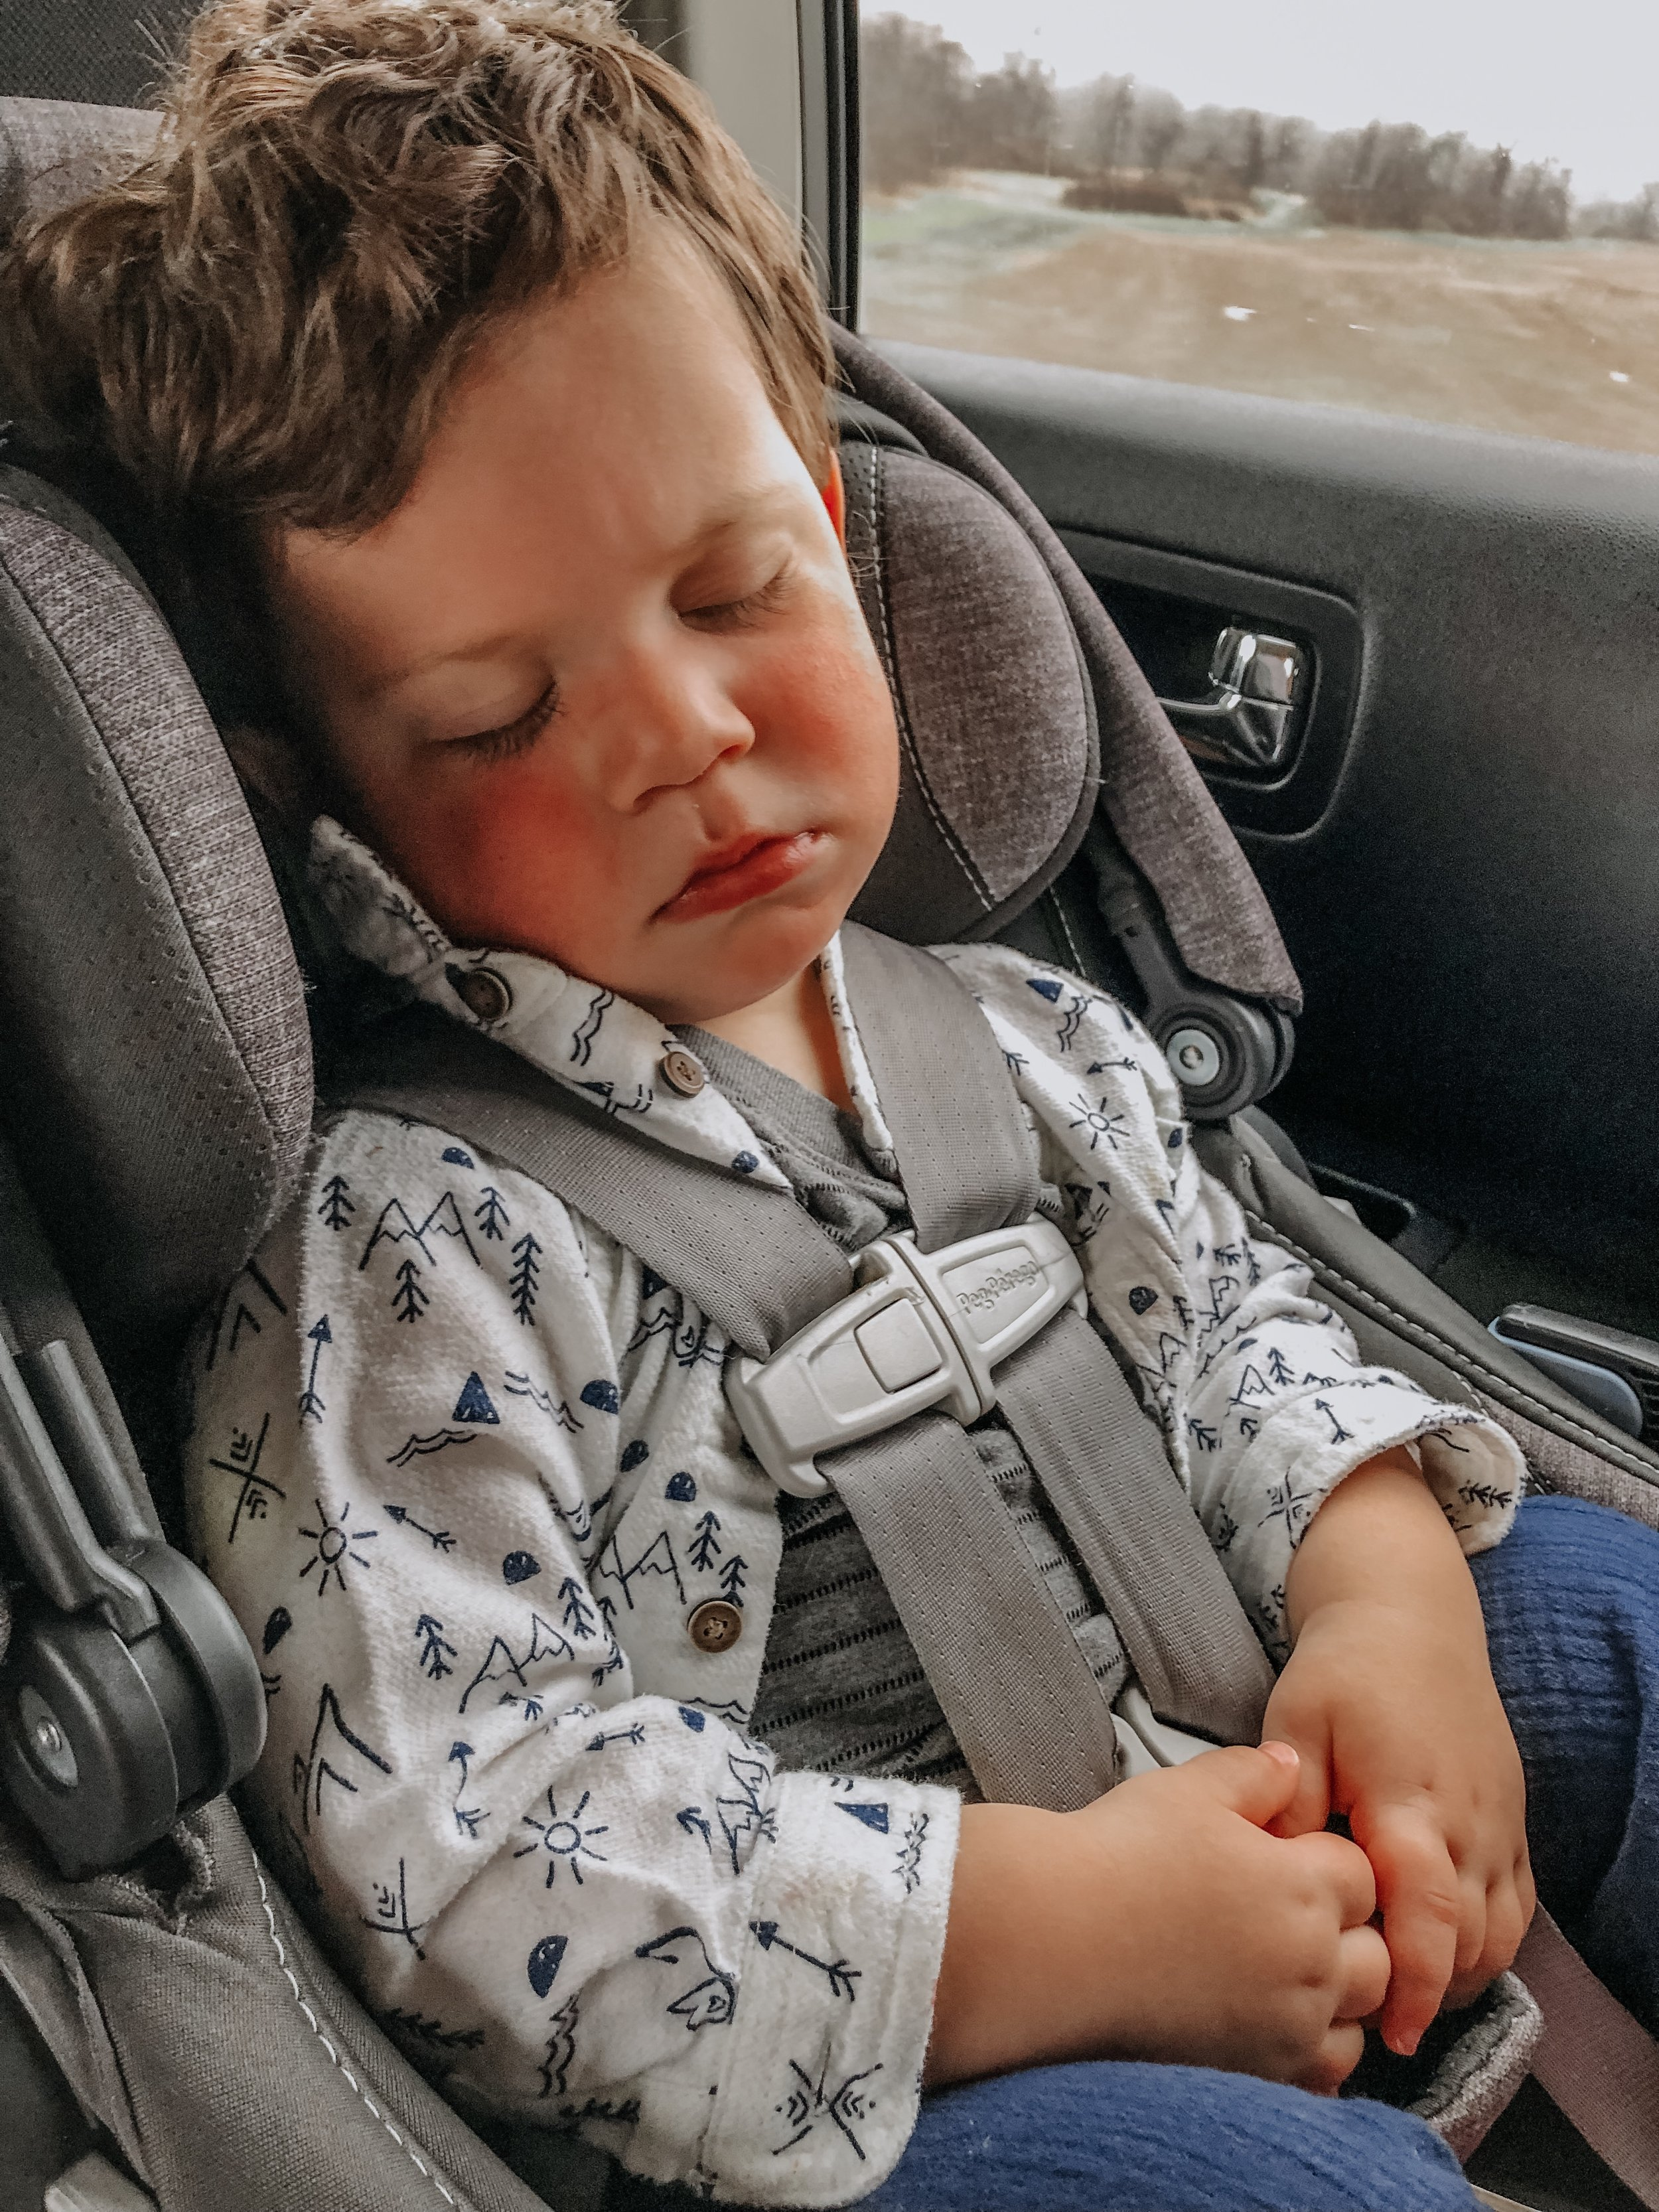 Dominic asleep in the car